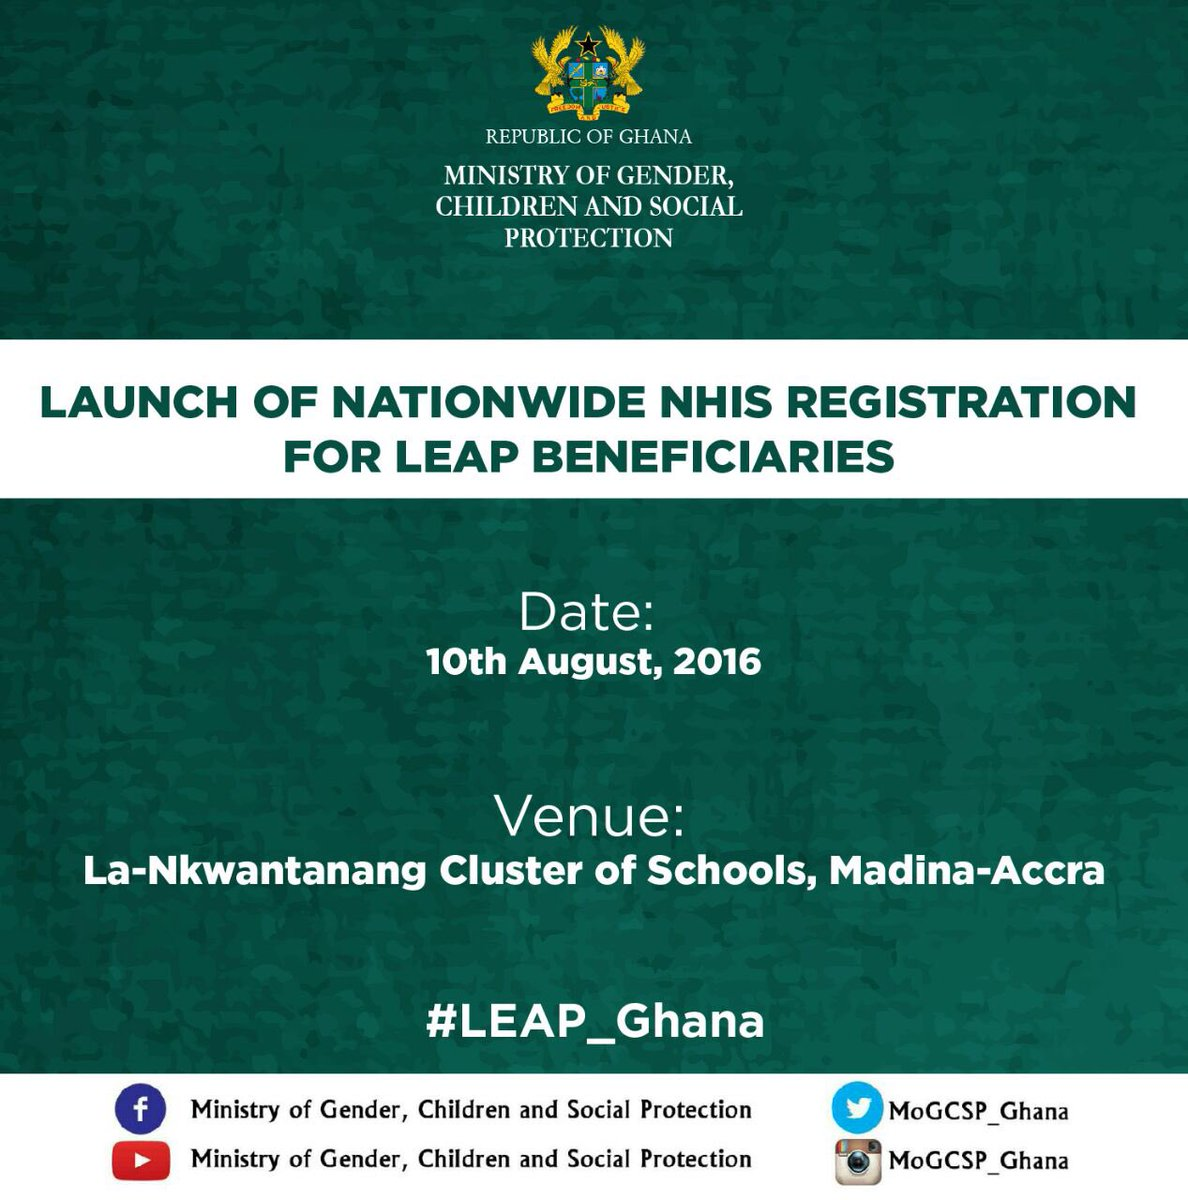 Join us to Launch the NHIS registration for LEAP beneficiaries on 10th August 2016 @NHIS_Ghana @NanaOyeLithur